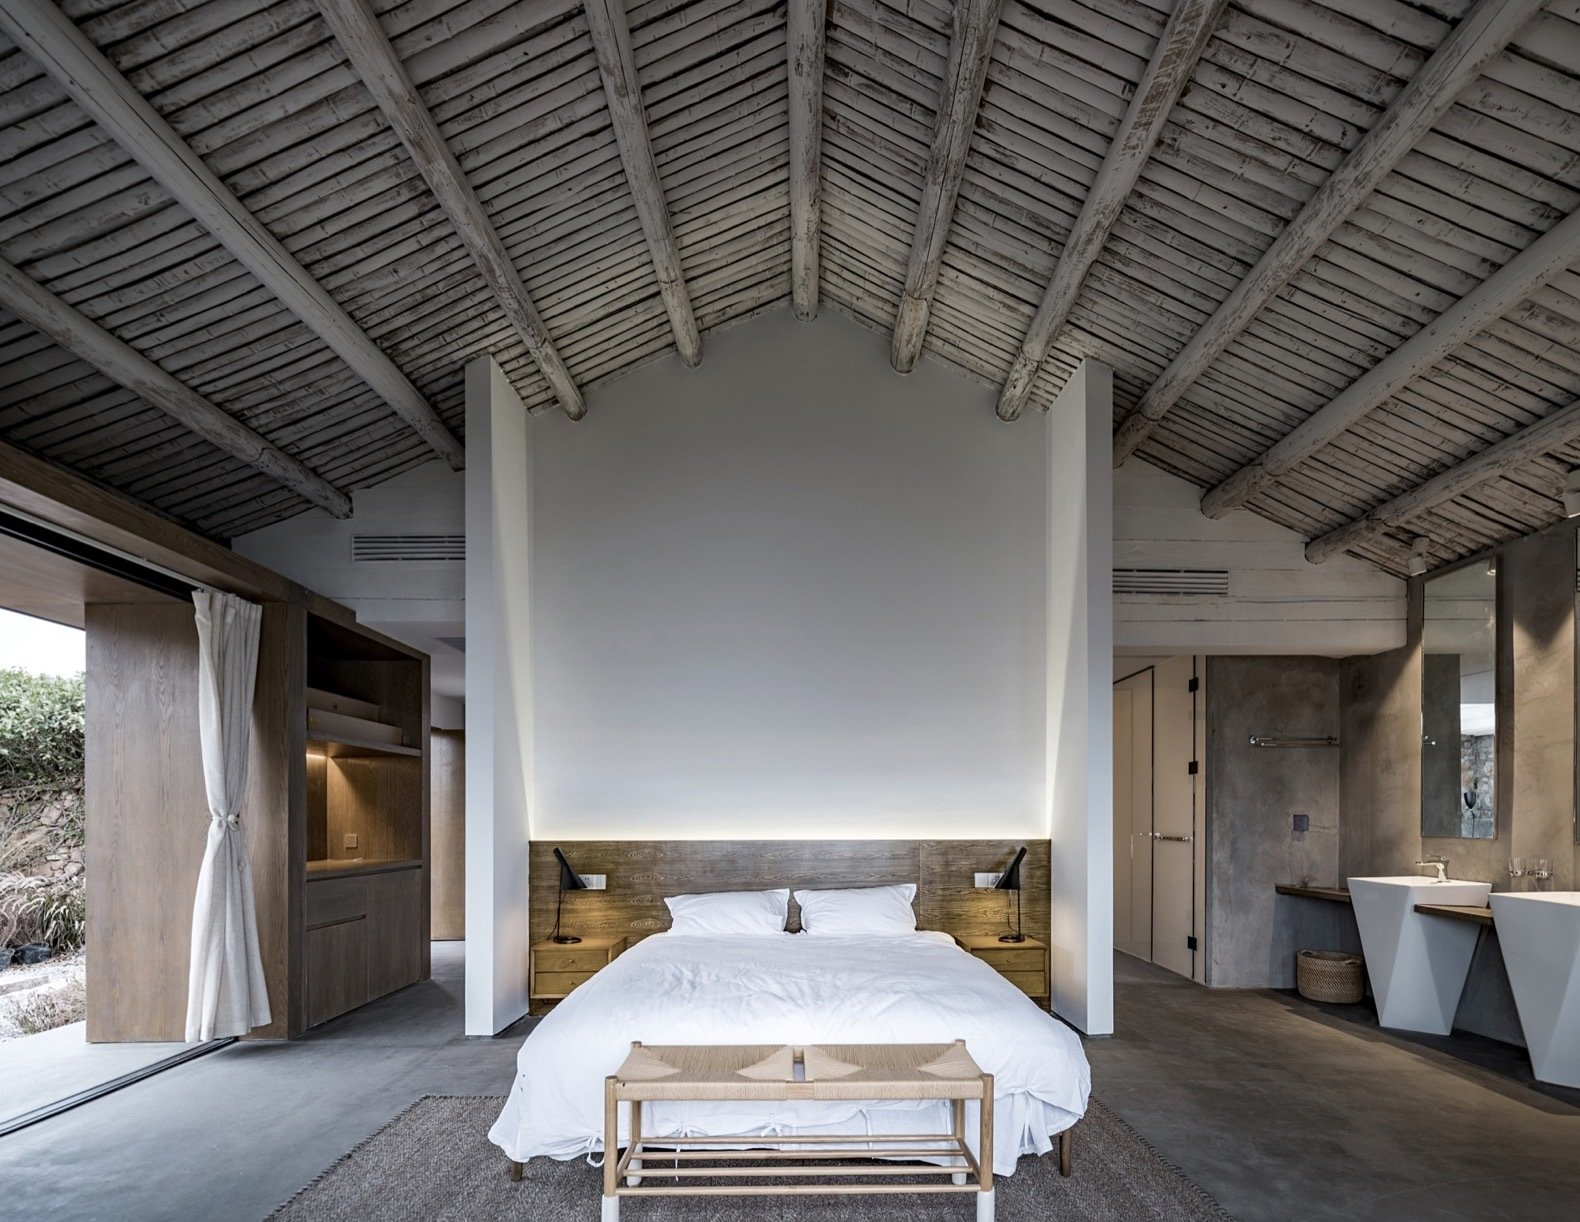 a-timber-beamed-ceiling-adds-a-rustic-touch-to-the-modern-master-suite